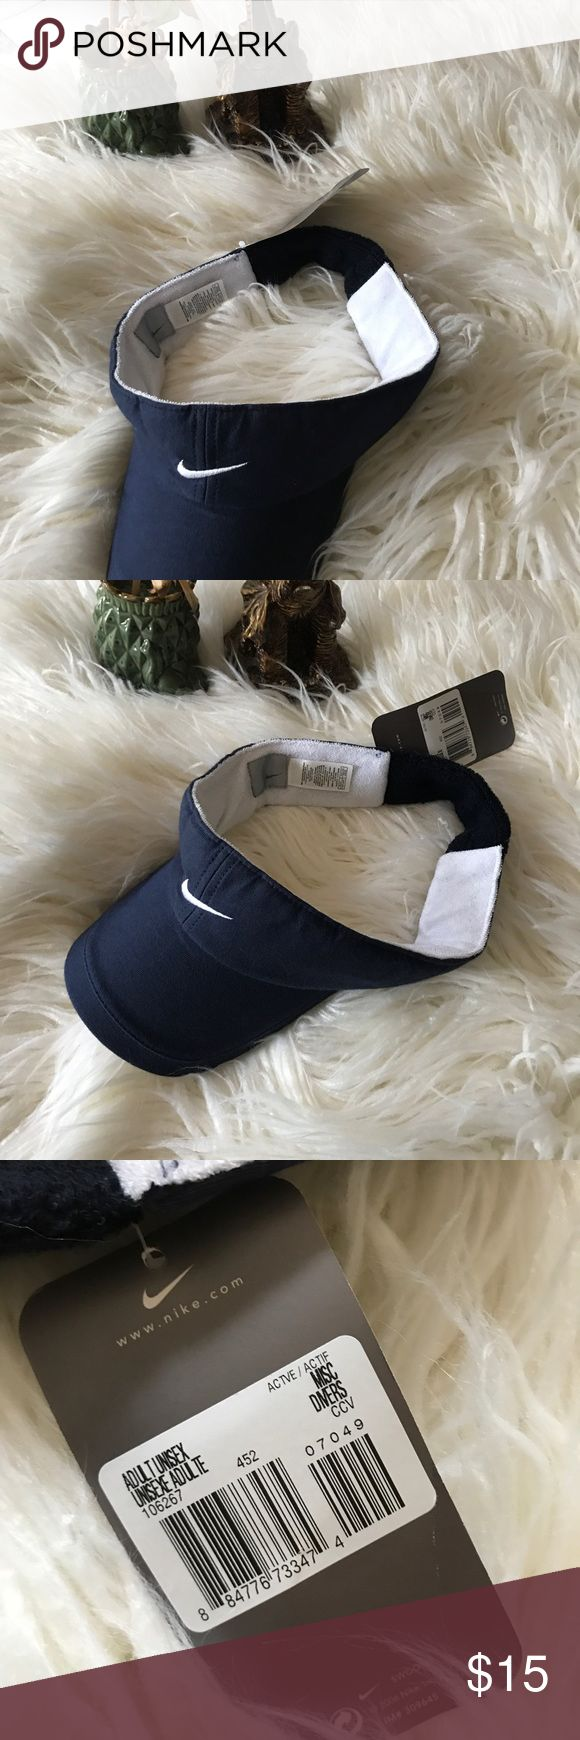 New nike Visor New with tag Nike golf/tennis Visor with stretchable band. Unisex Nike Accessories Hats